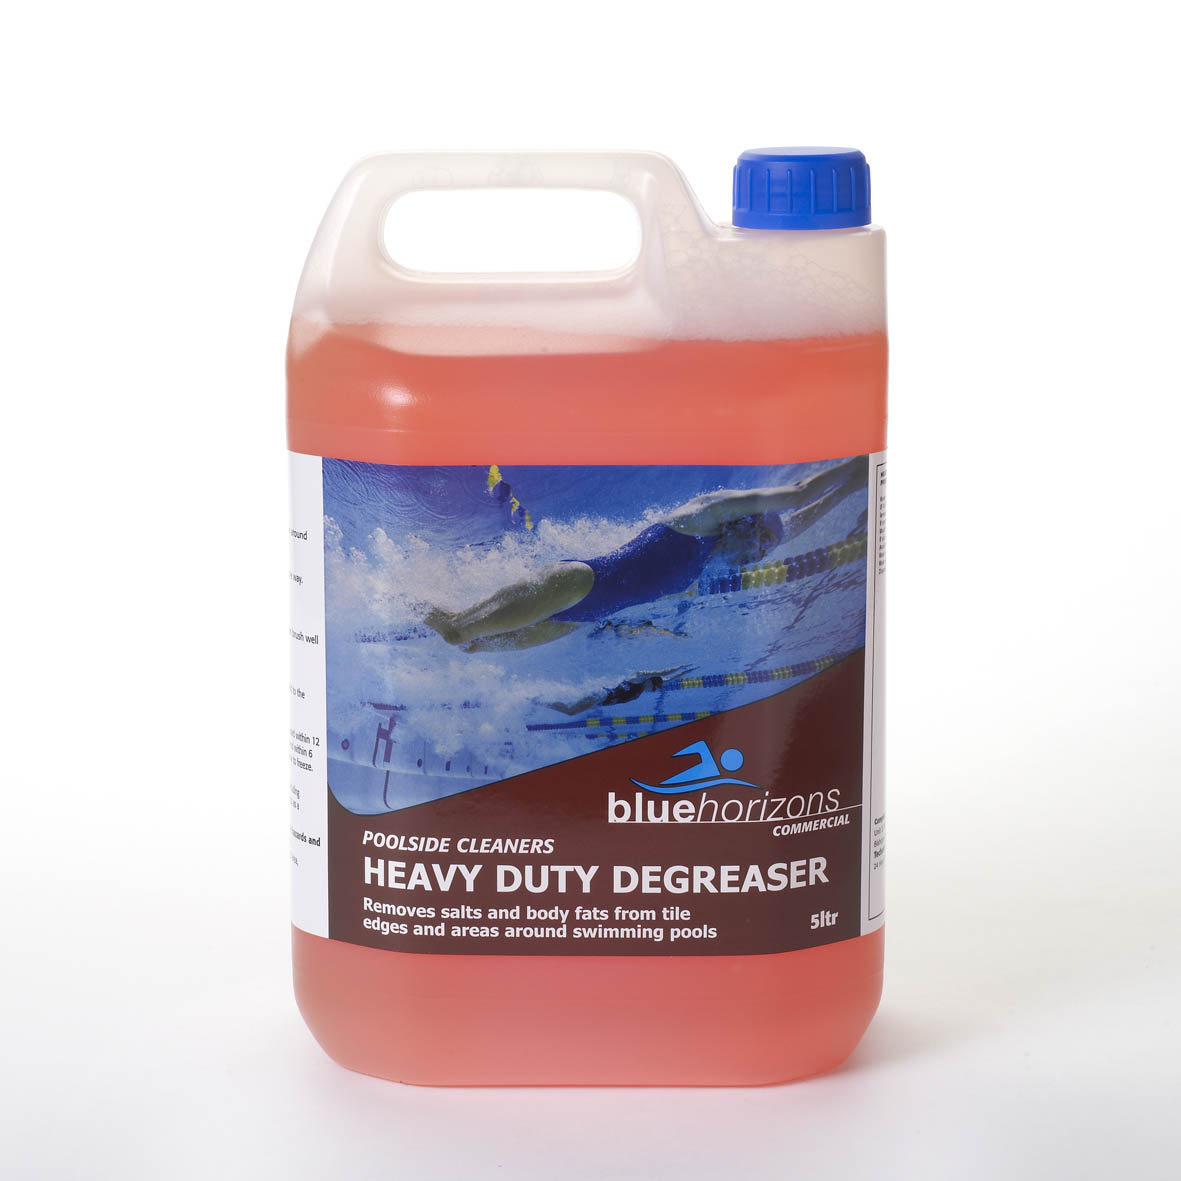 Swimming Pool Chemicals And Equipment